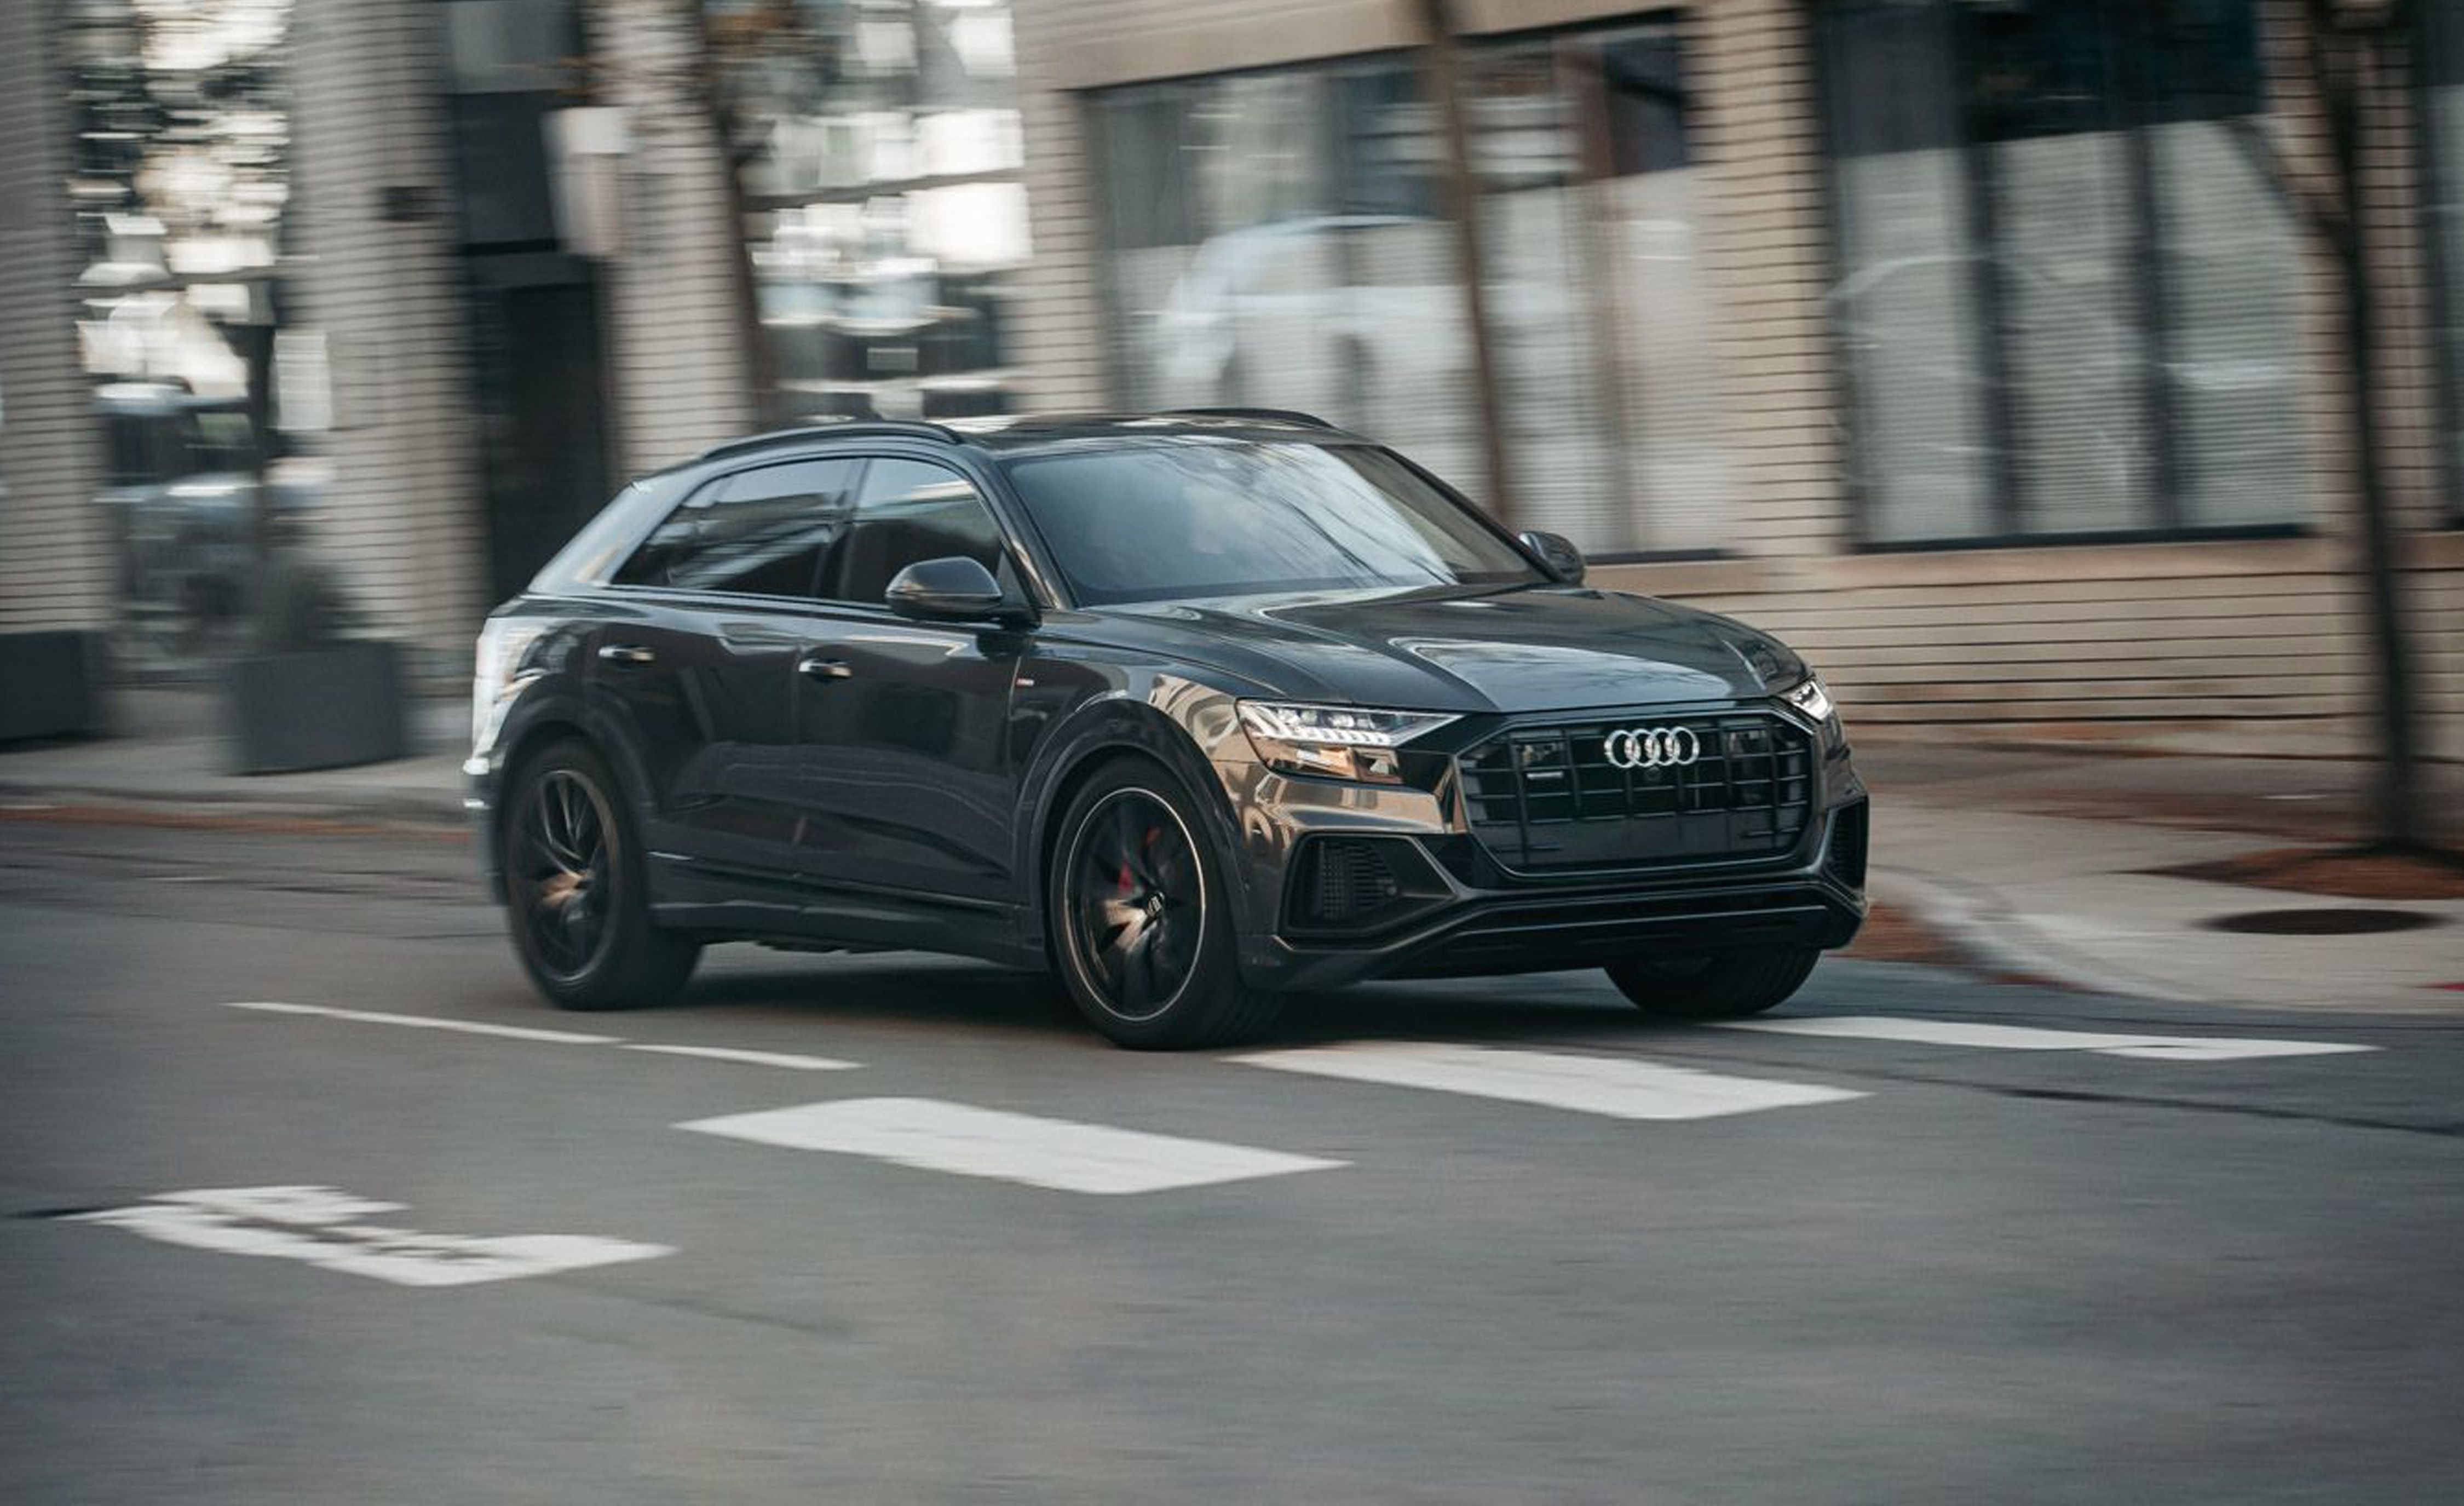 2019 Audi Q8 Reviews Audi Q8 Price Photos And Specs Car And Driver